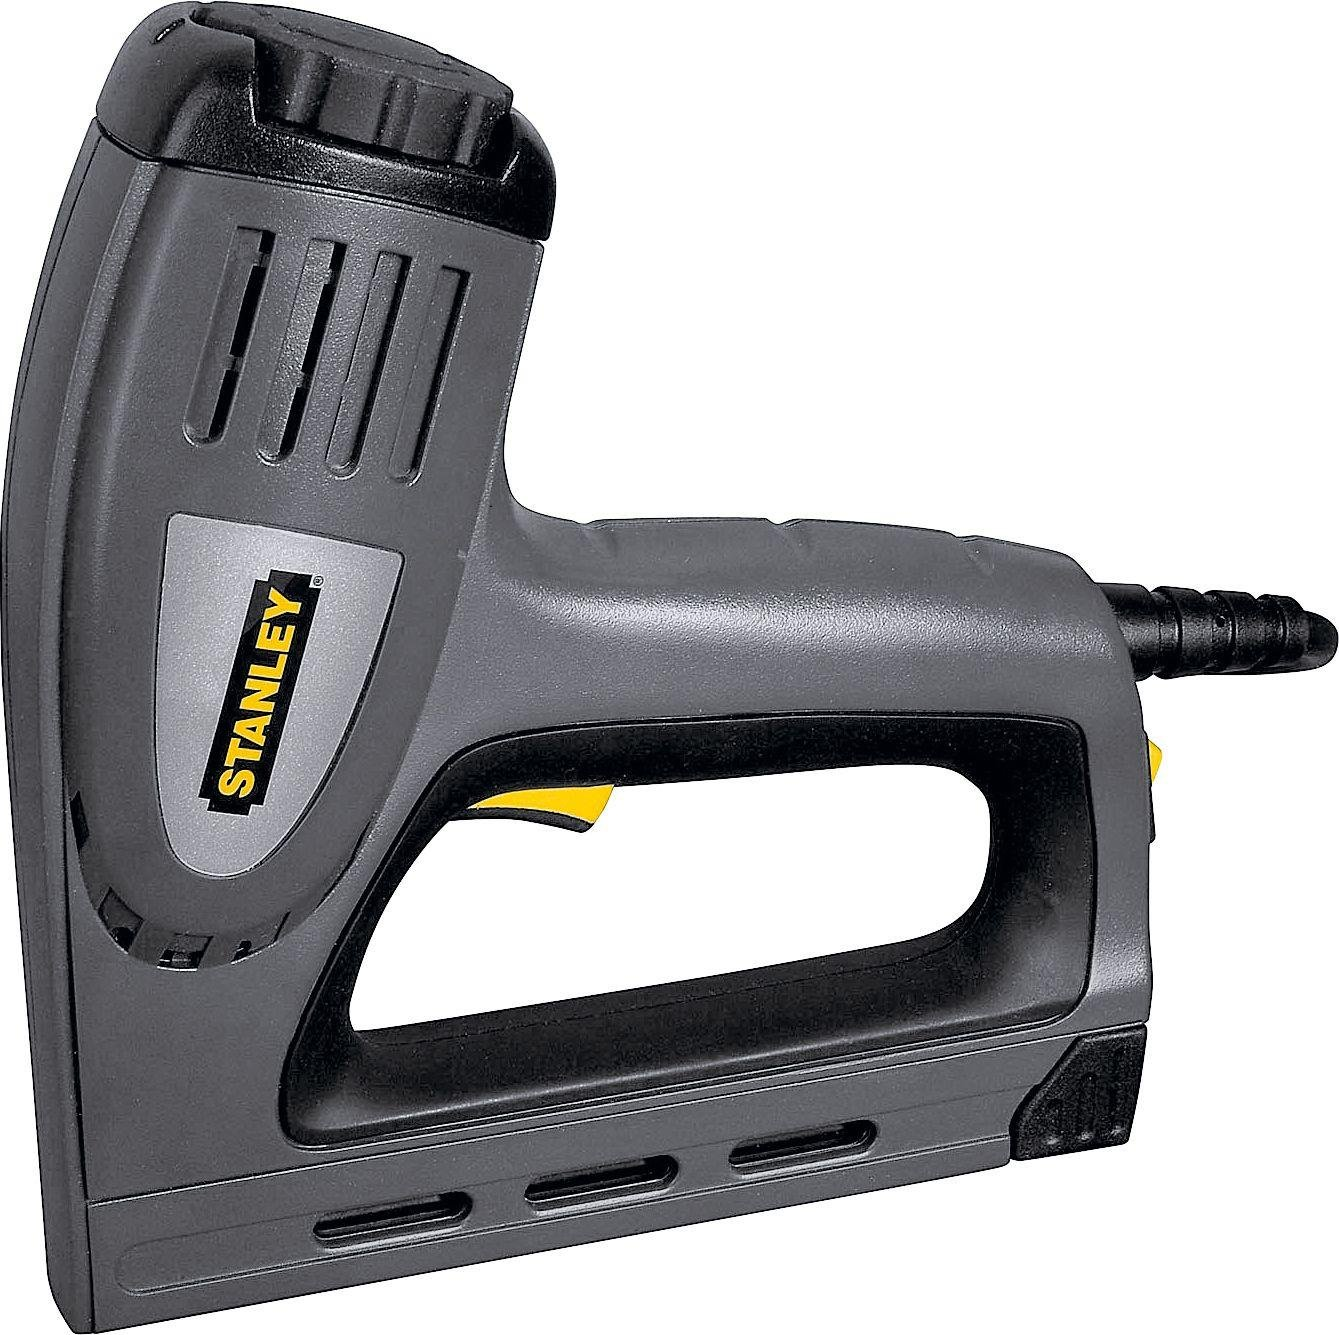 Stanley - Electric Nail And Staple Gun lowest price